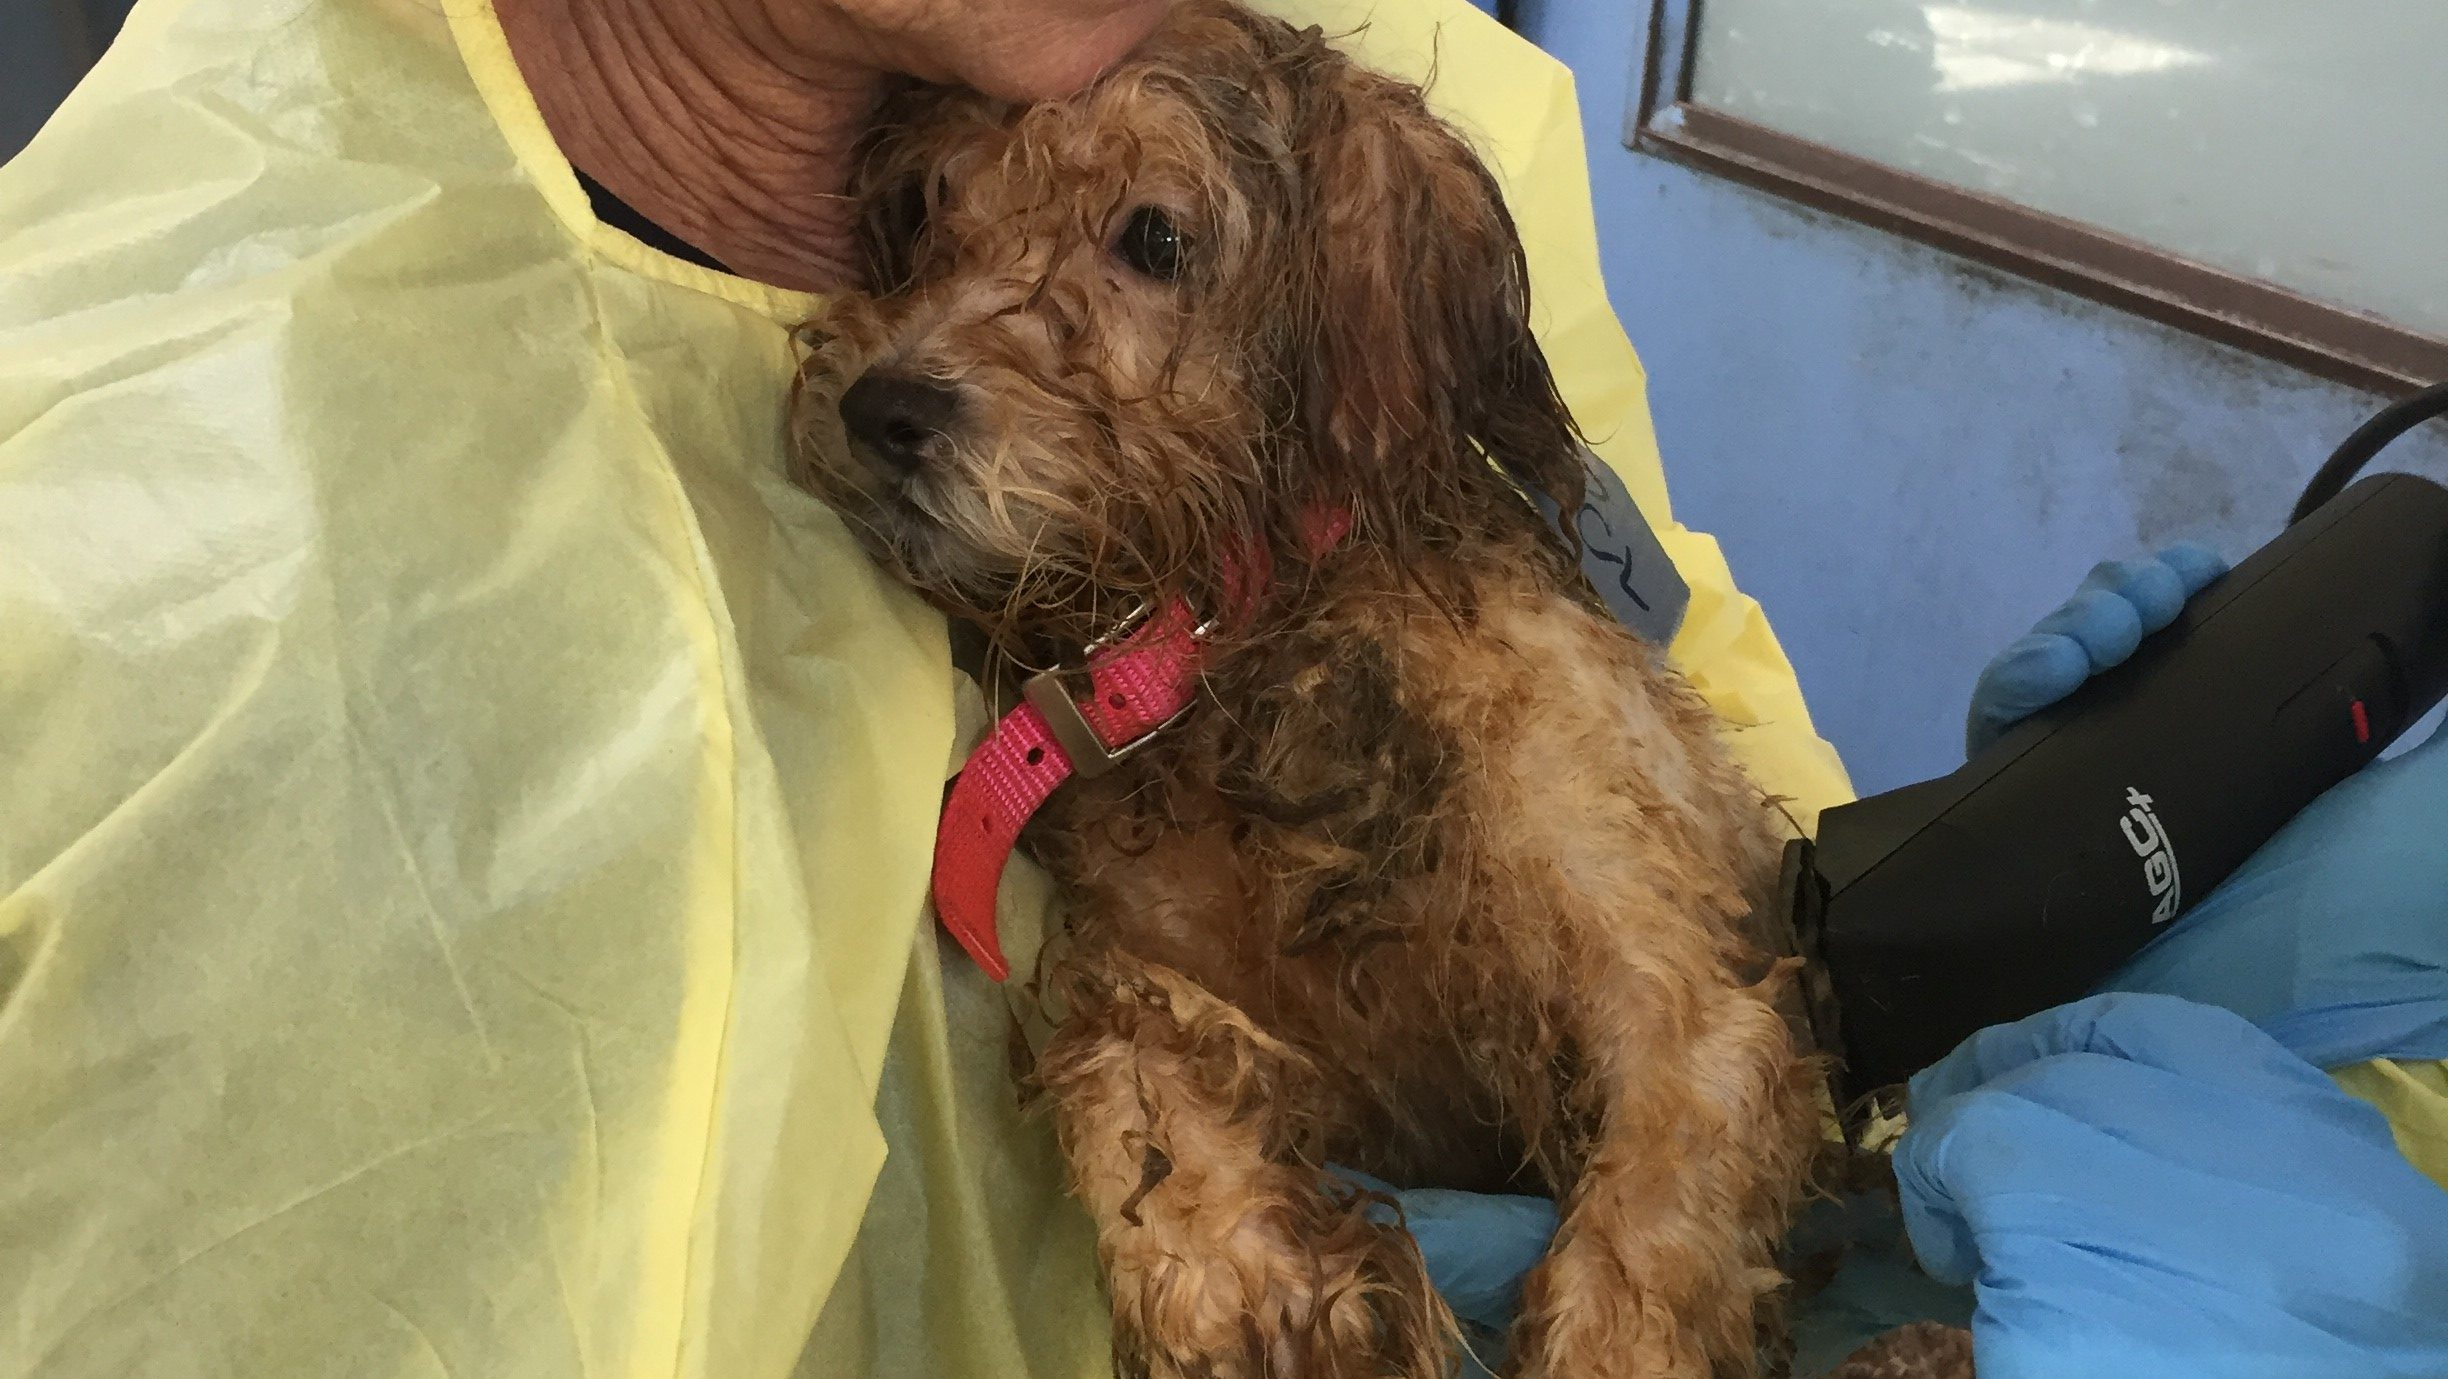 Dozens of neglected dogs surrendered to BC SPCA